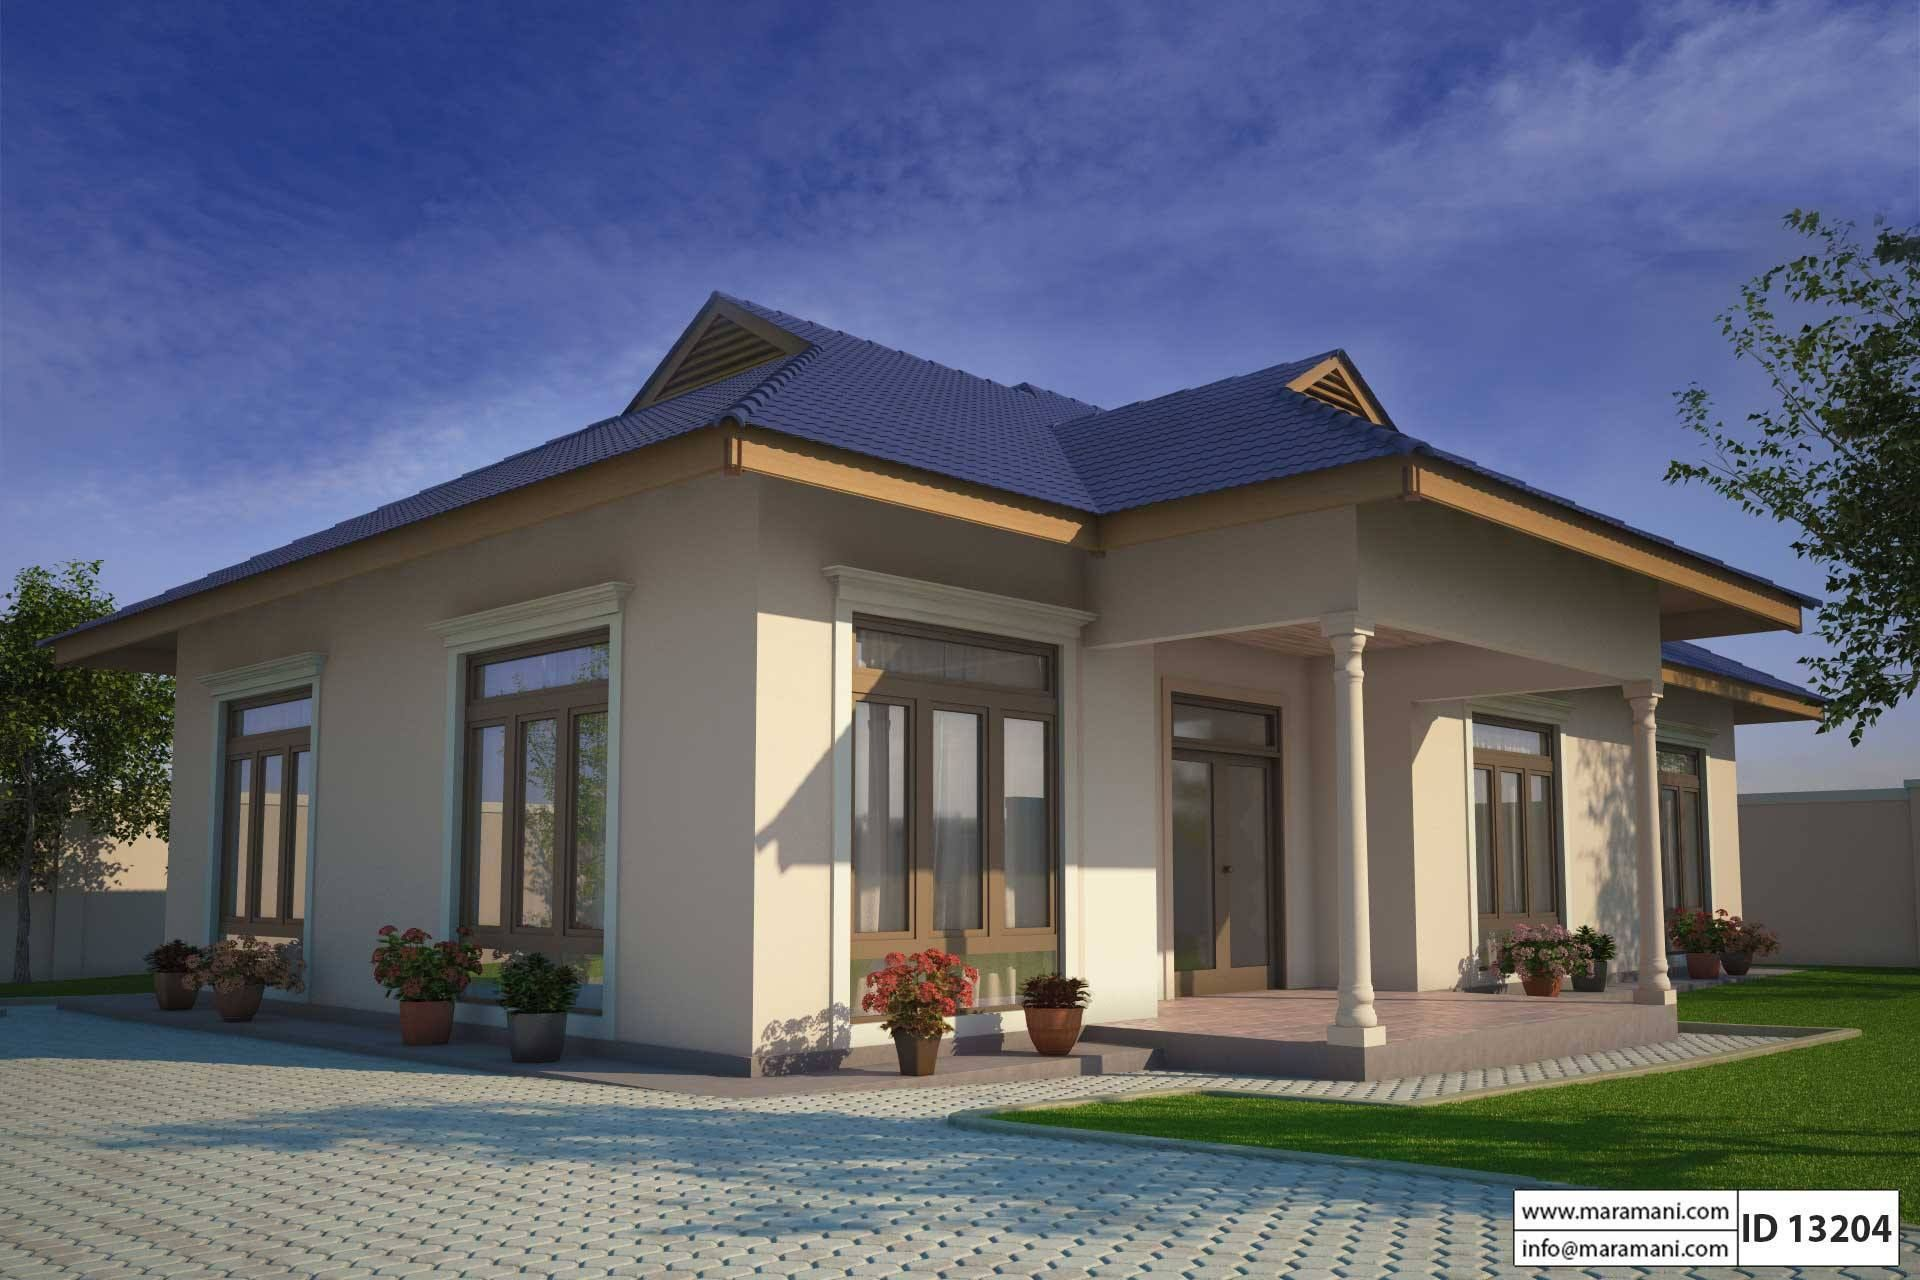 Small Three Bedroom House Plan Id 13204 Floor Plans By Maramani Three Bedroom House Plan Bedroom House Plans Architectural House Plans